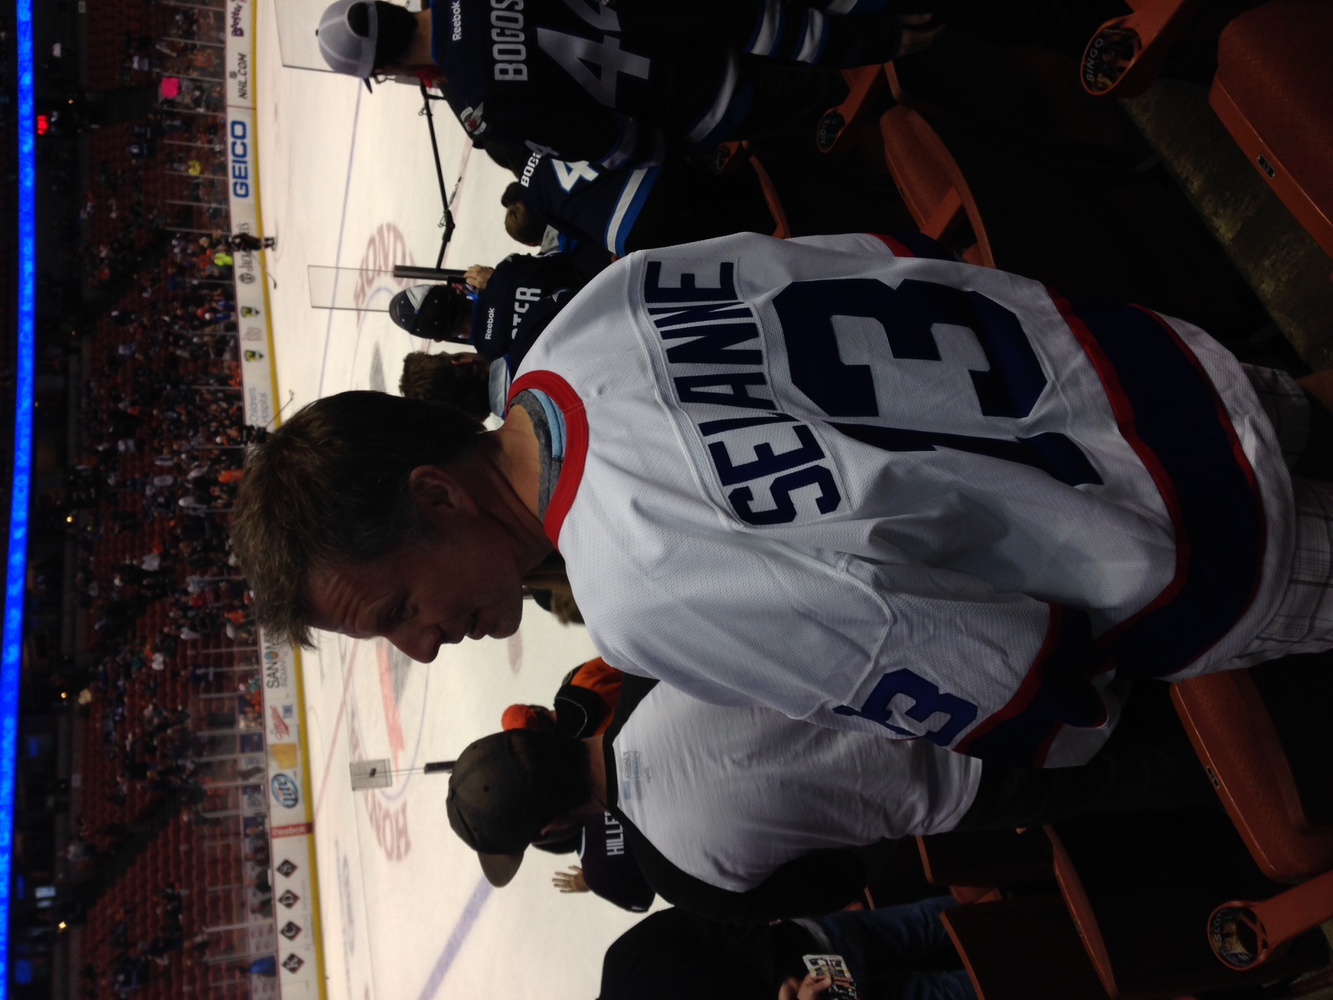 Jets' fan David Vanderwees, in his vintage Selanne jersey, watches the team warm up in Anaheim Monday. (Geoff Kirbyson / Winnipeg Free Press)